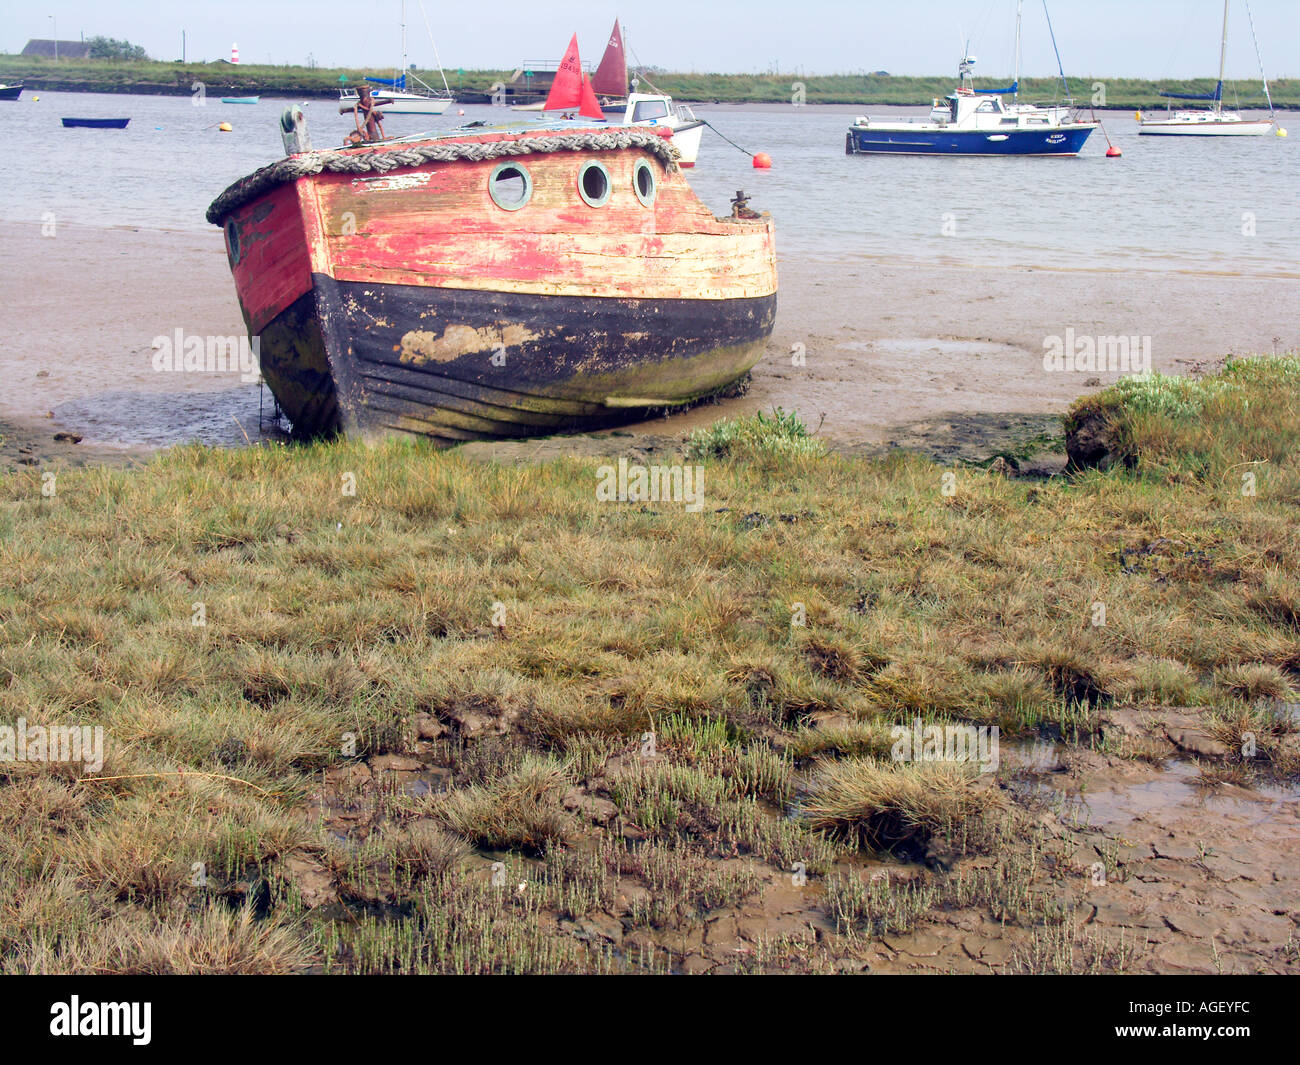 Old red and black boat decaying in mud Orford Suffolk England - Stock Image